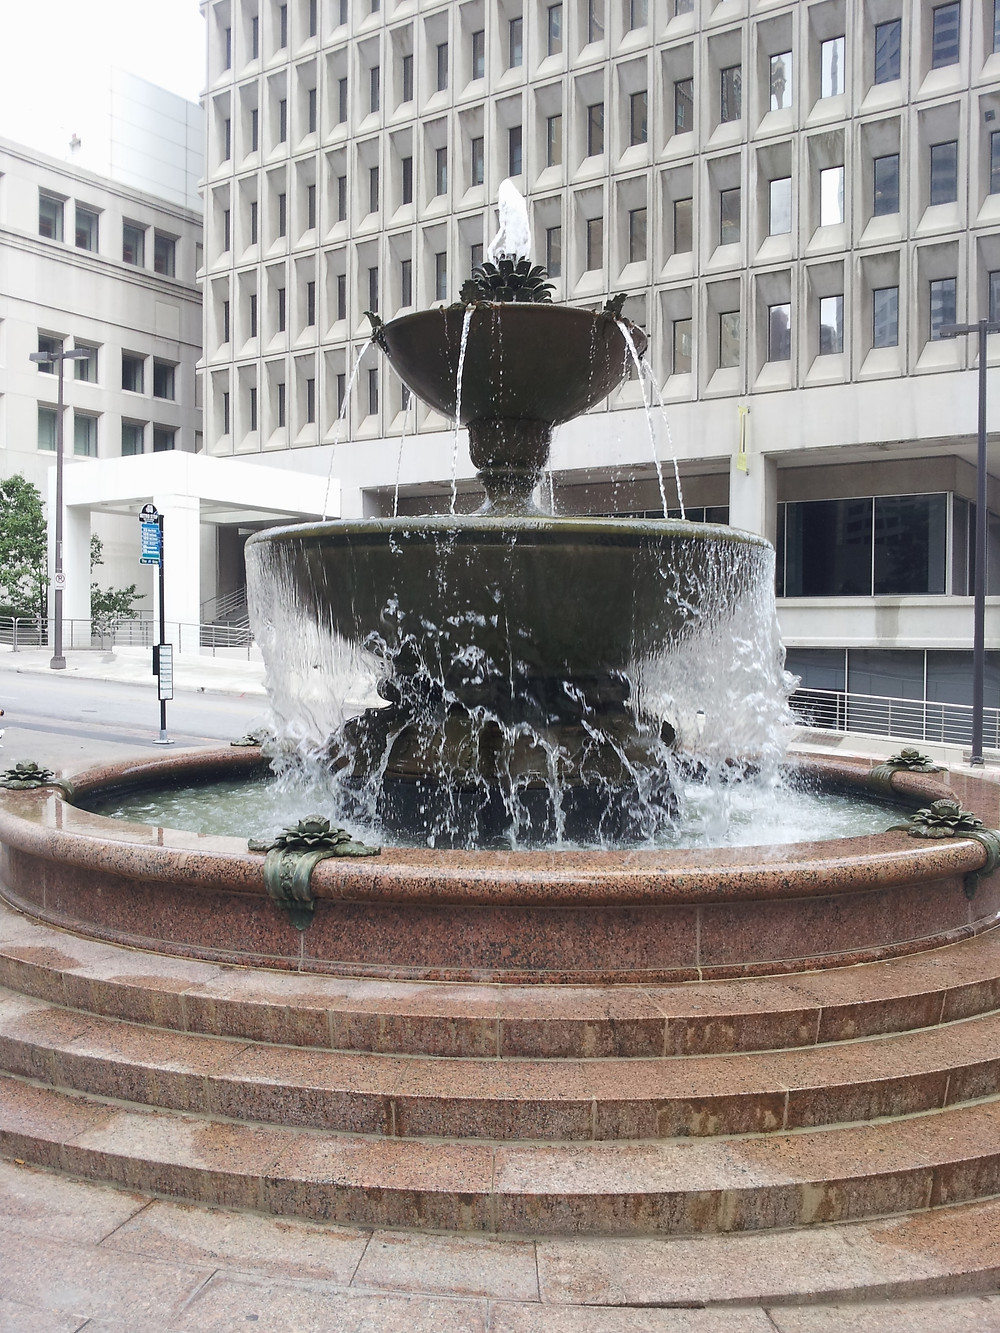 William & Charlotte Crosby Kemper Memorial Fountain, Photo by: Alexis Webb Bechtold